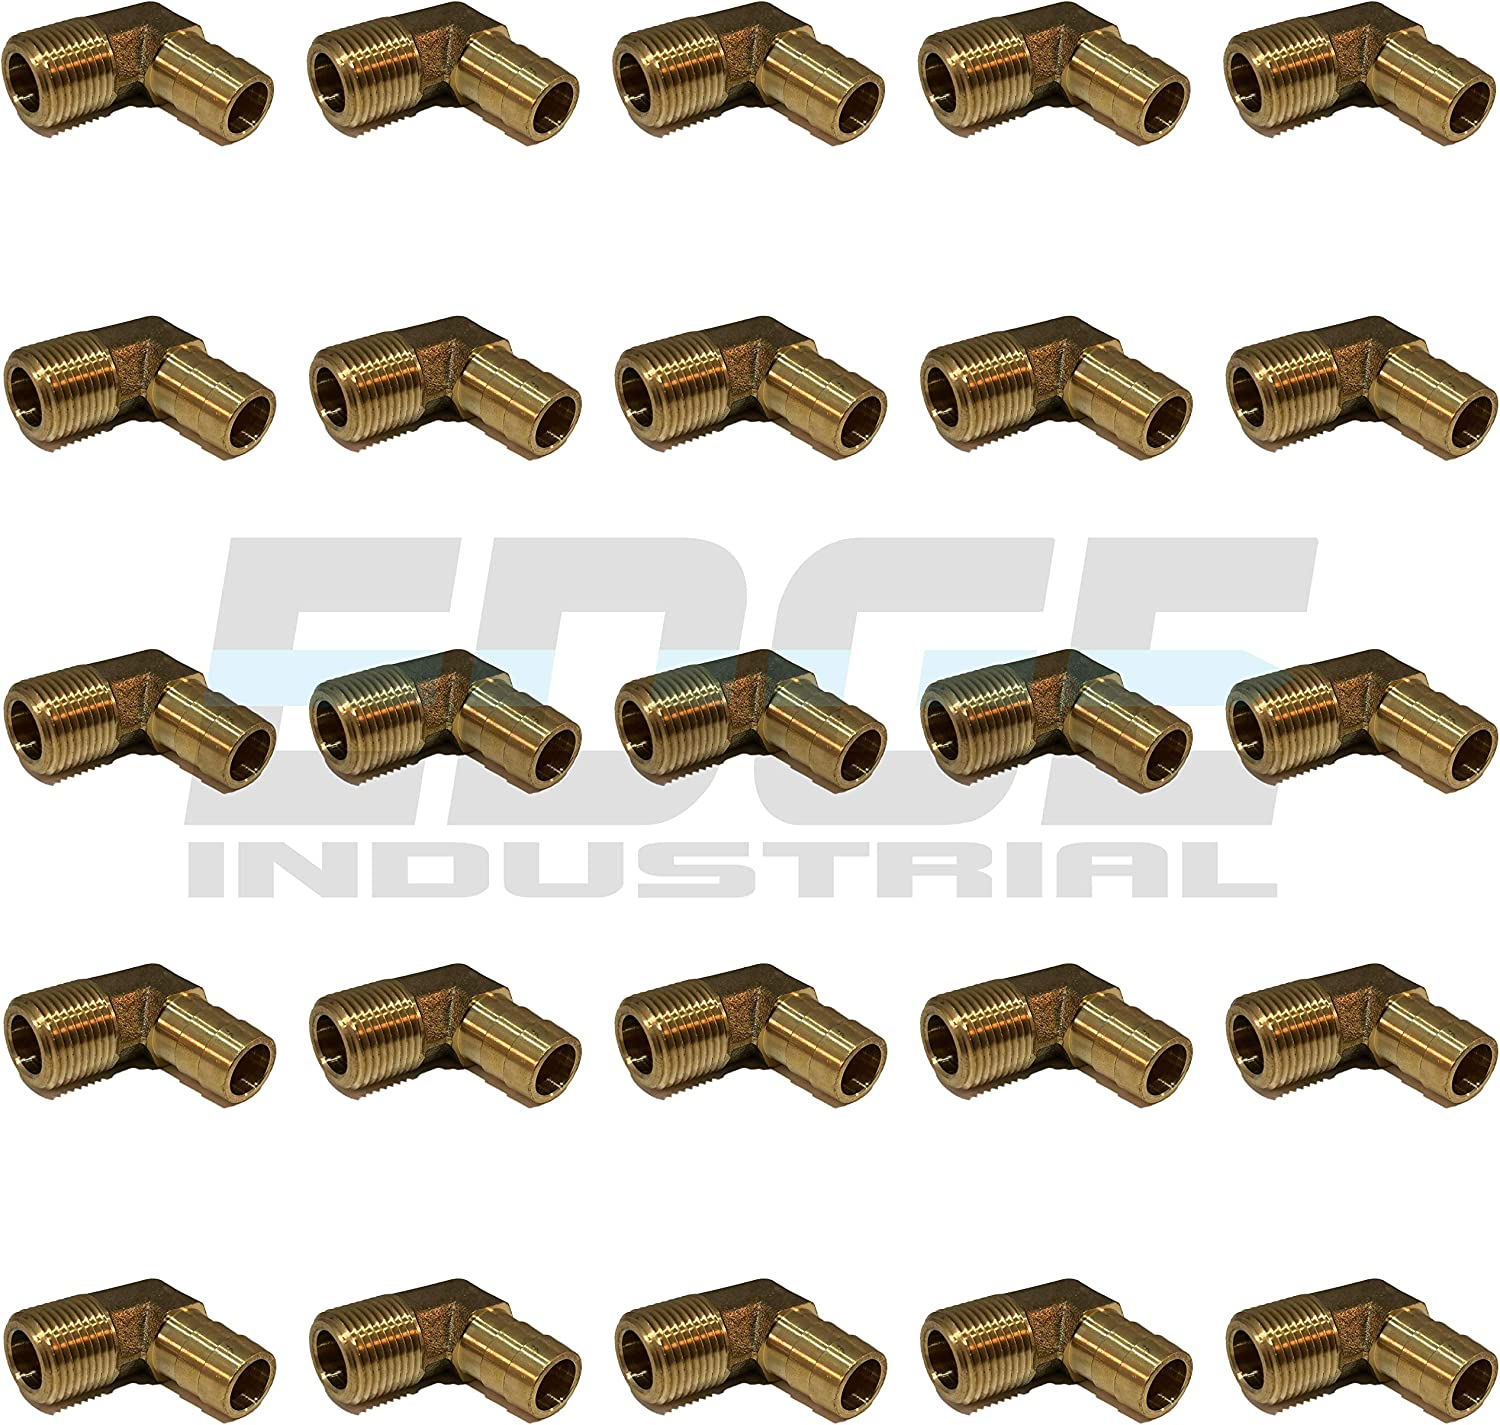 Gas Water EDGE INDUSTRIAL 1//2 Hose ID to 3//8 Male NPT MNPT 90 Degree Brass Elbow Fitting Fuel WOG AIR Qty 01 Oil